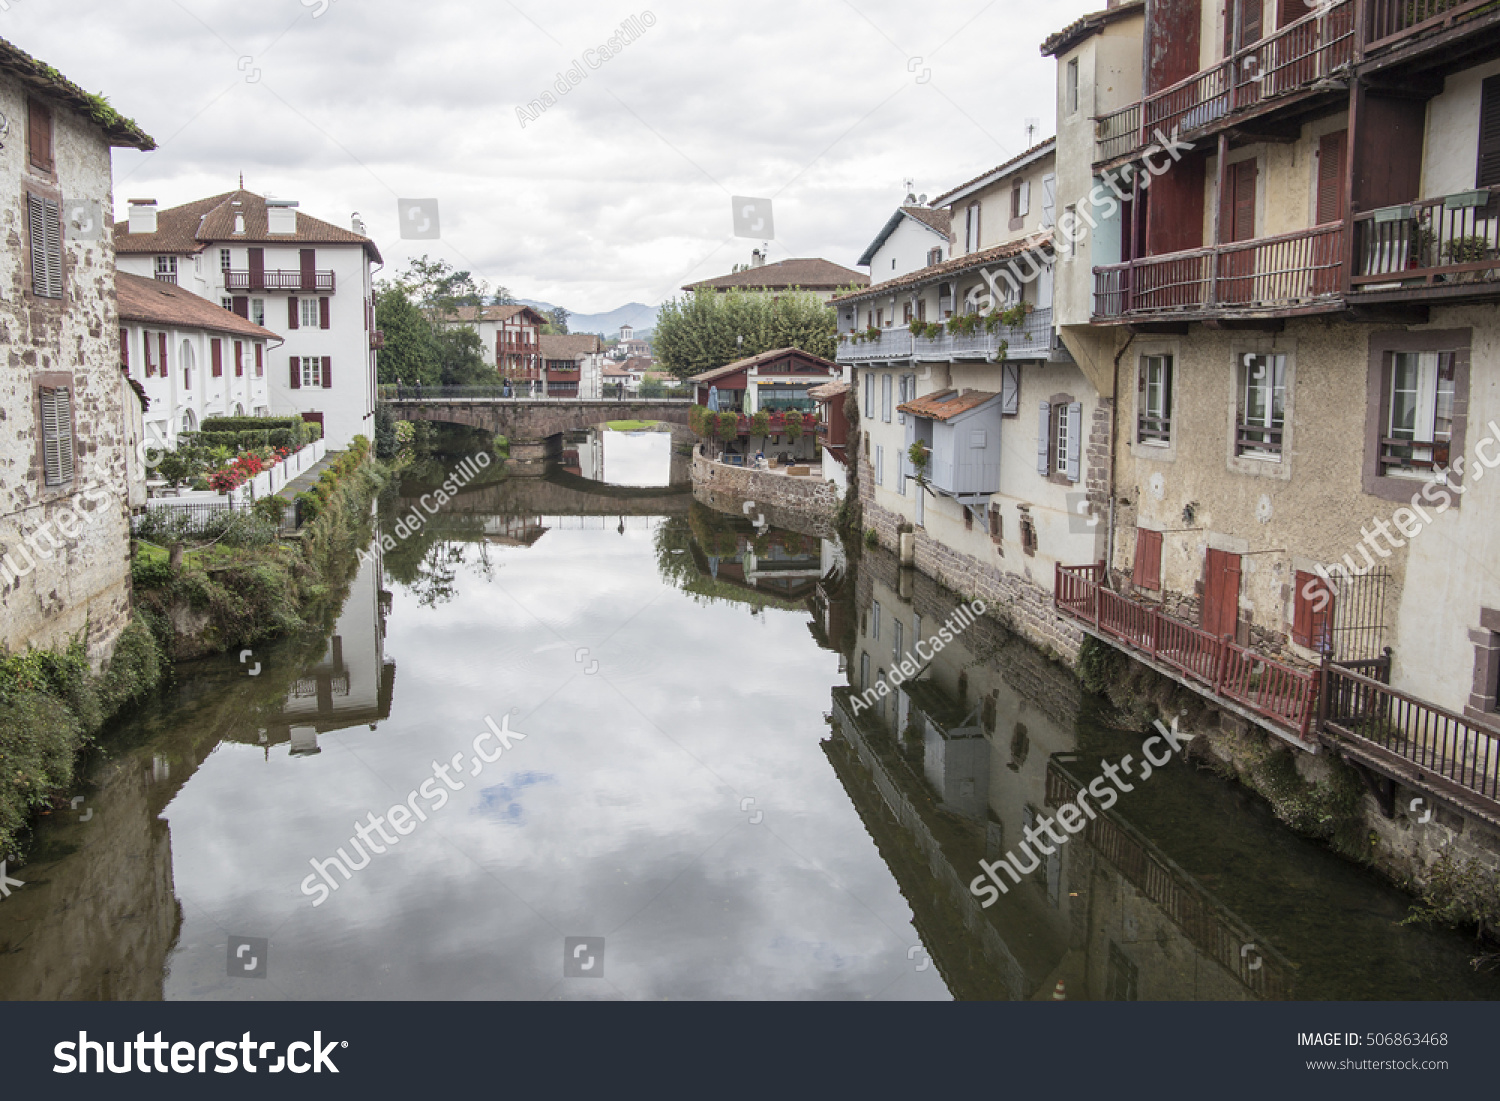 Saint Jean Pied De Port Saint Jean Pied De Port Traditional Stock Photo Edit Now